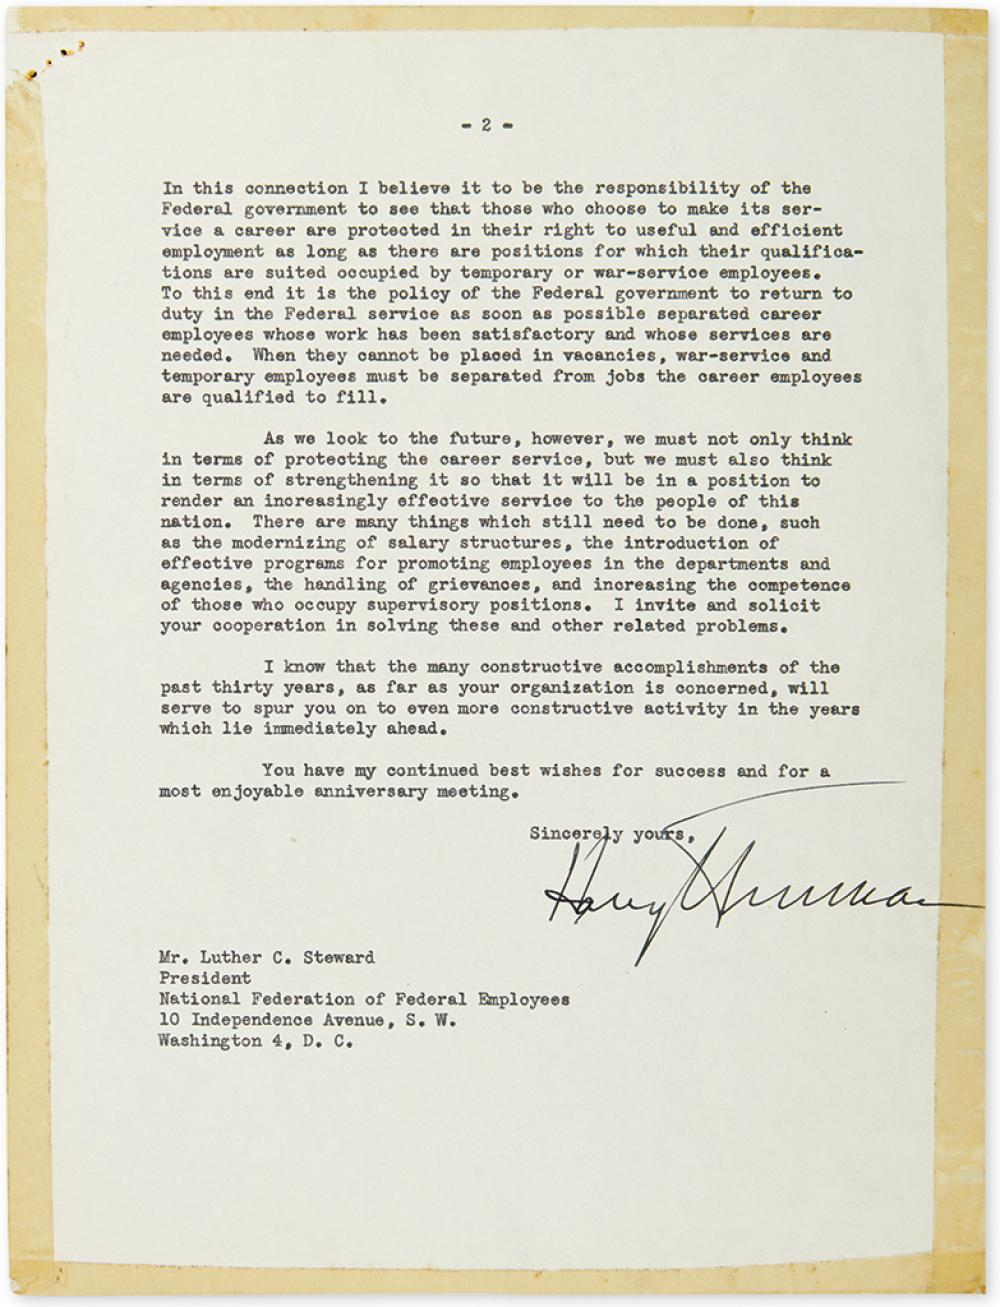 TRUMAN, HARRY S. Typed Letter Signed, as President, to President of the National Federation of Federal Employees Luther Corwin Steward,